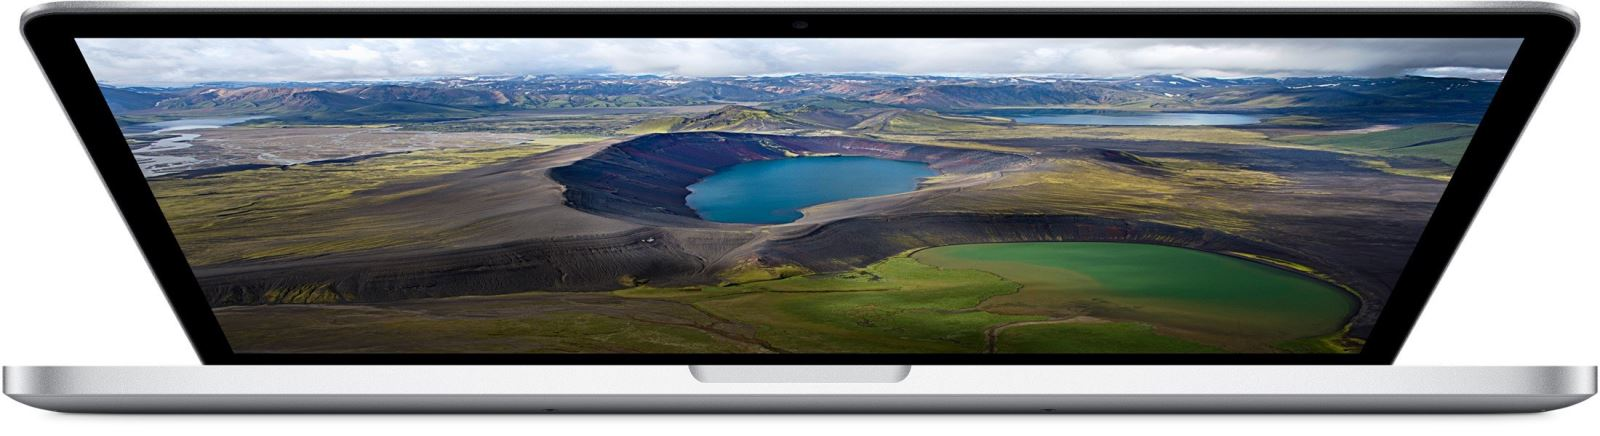 macbook pro retina 13 man hinh